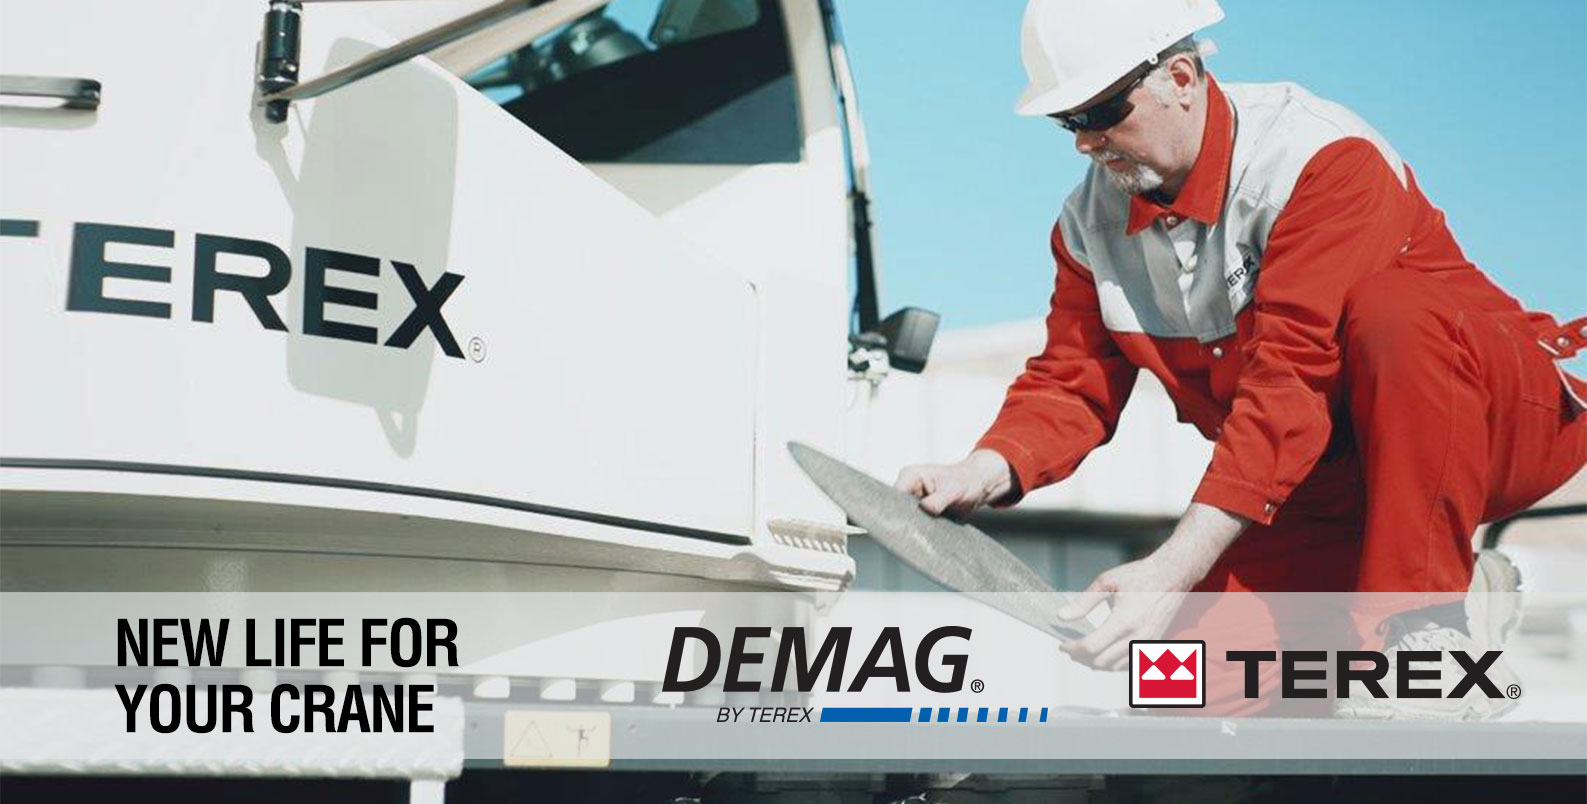 New Life for Your Crane - TEREX | DEMAG